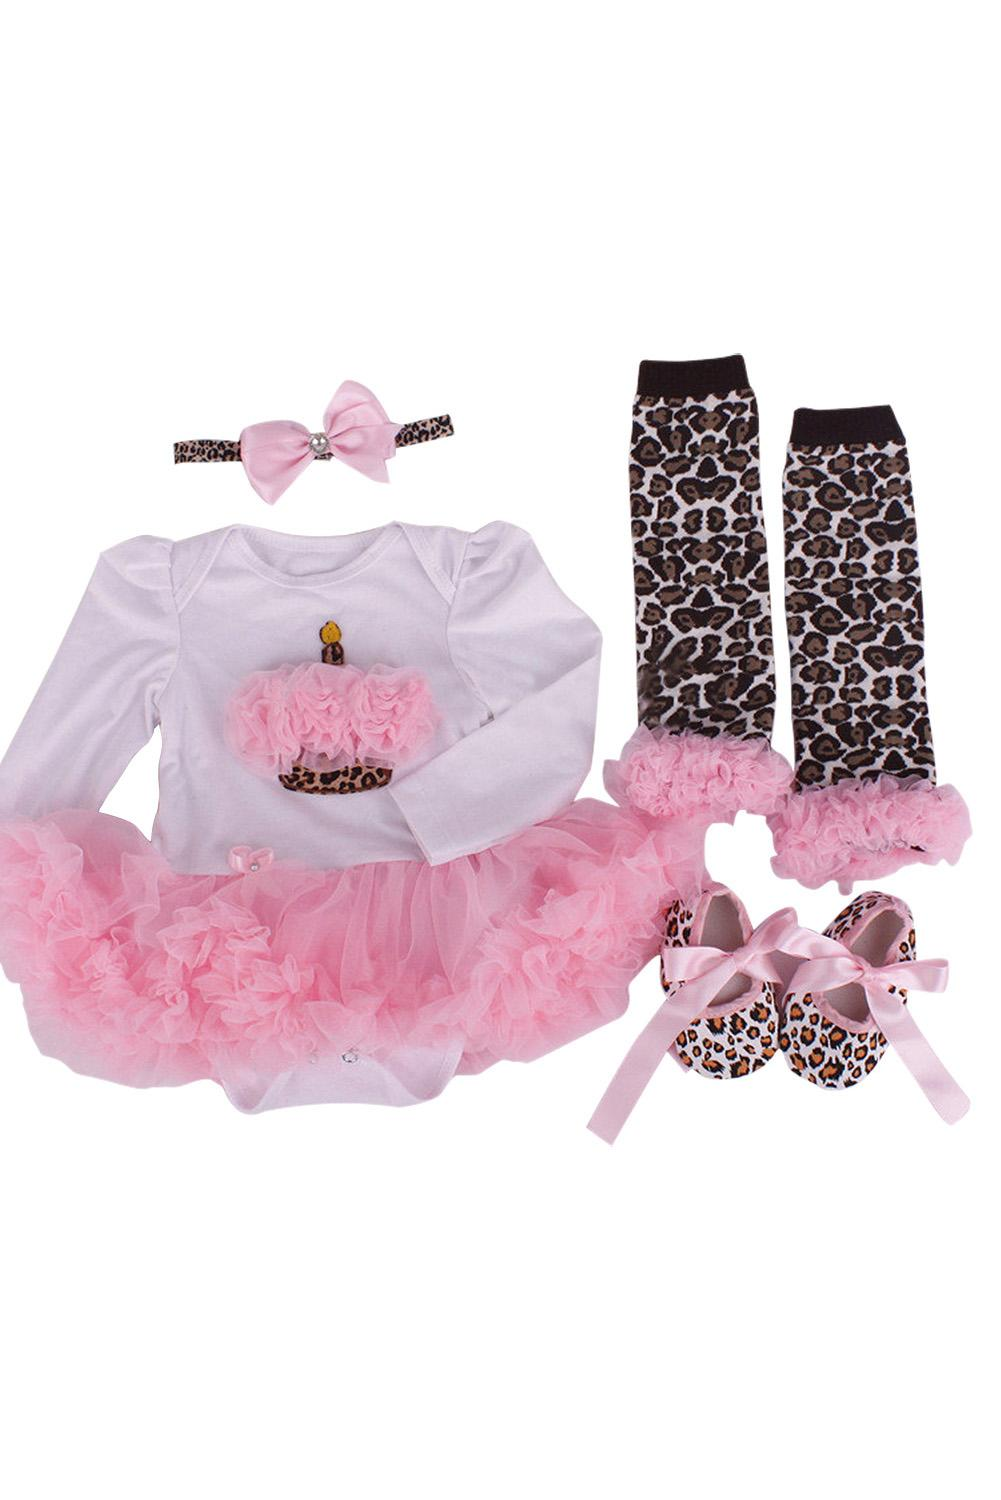 c8c2d89abbb3 2019 HOT SALE Newborn Pink Leopard Baby Romper With Tutu Dress +Head  Band+Shoes+Leggings Baby Clothing Set M From Jasmineer